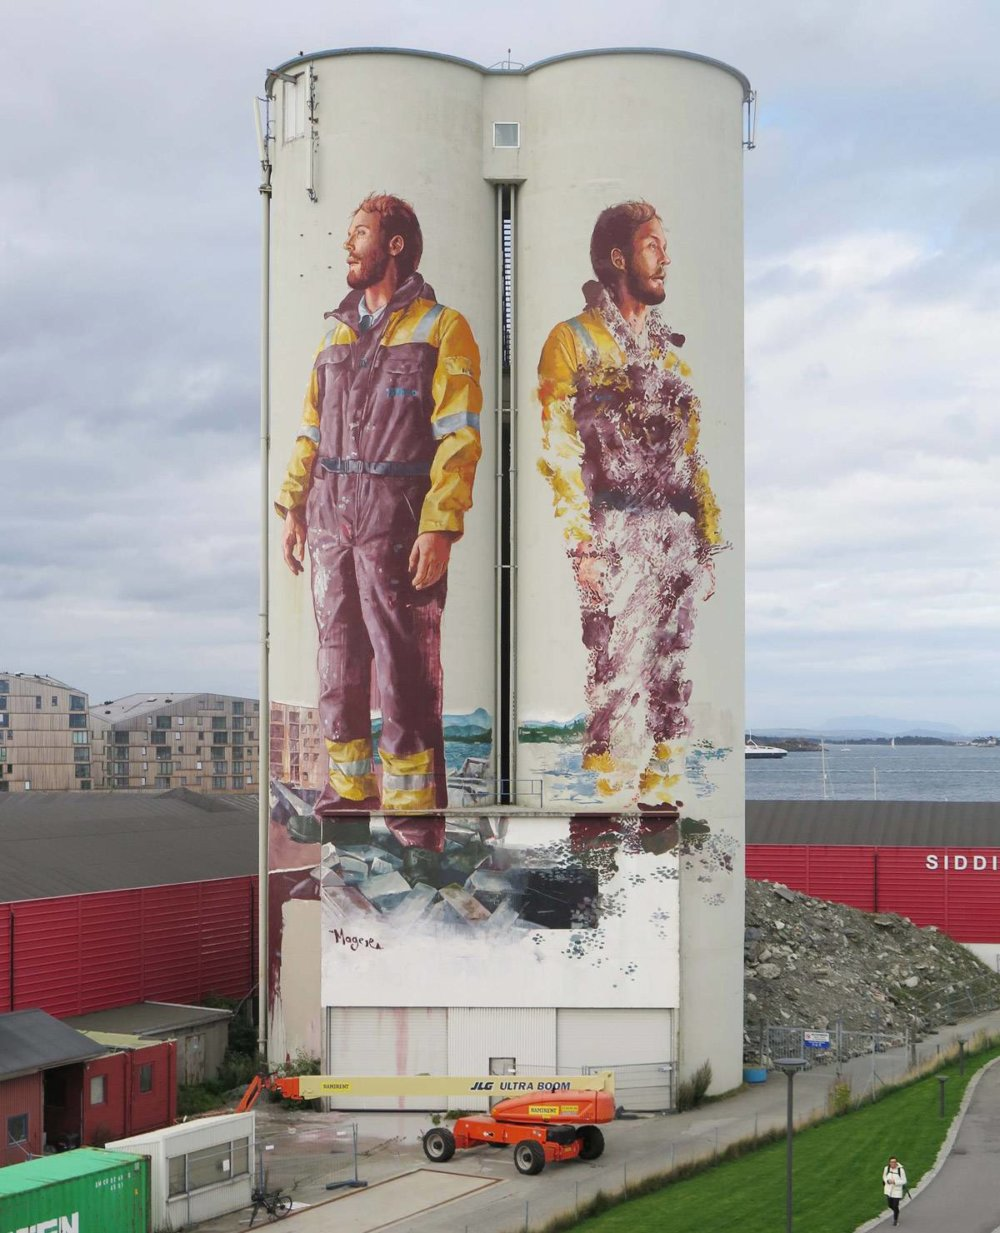 Magnificent Giant Photo Realistic Murals That Portray Political And Social Issues By Fintan Magee 10